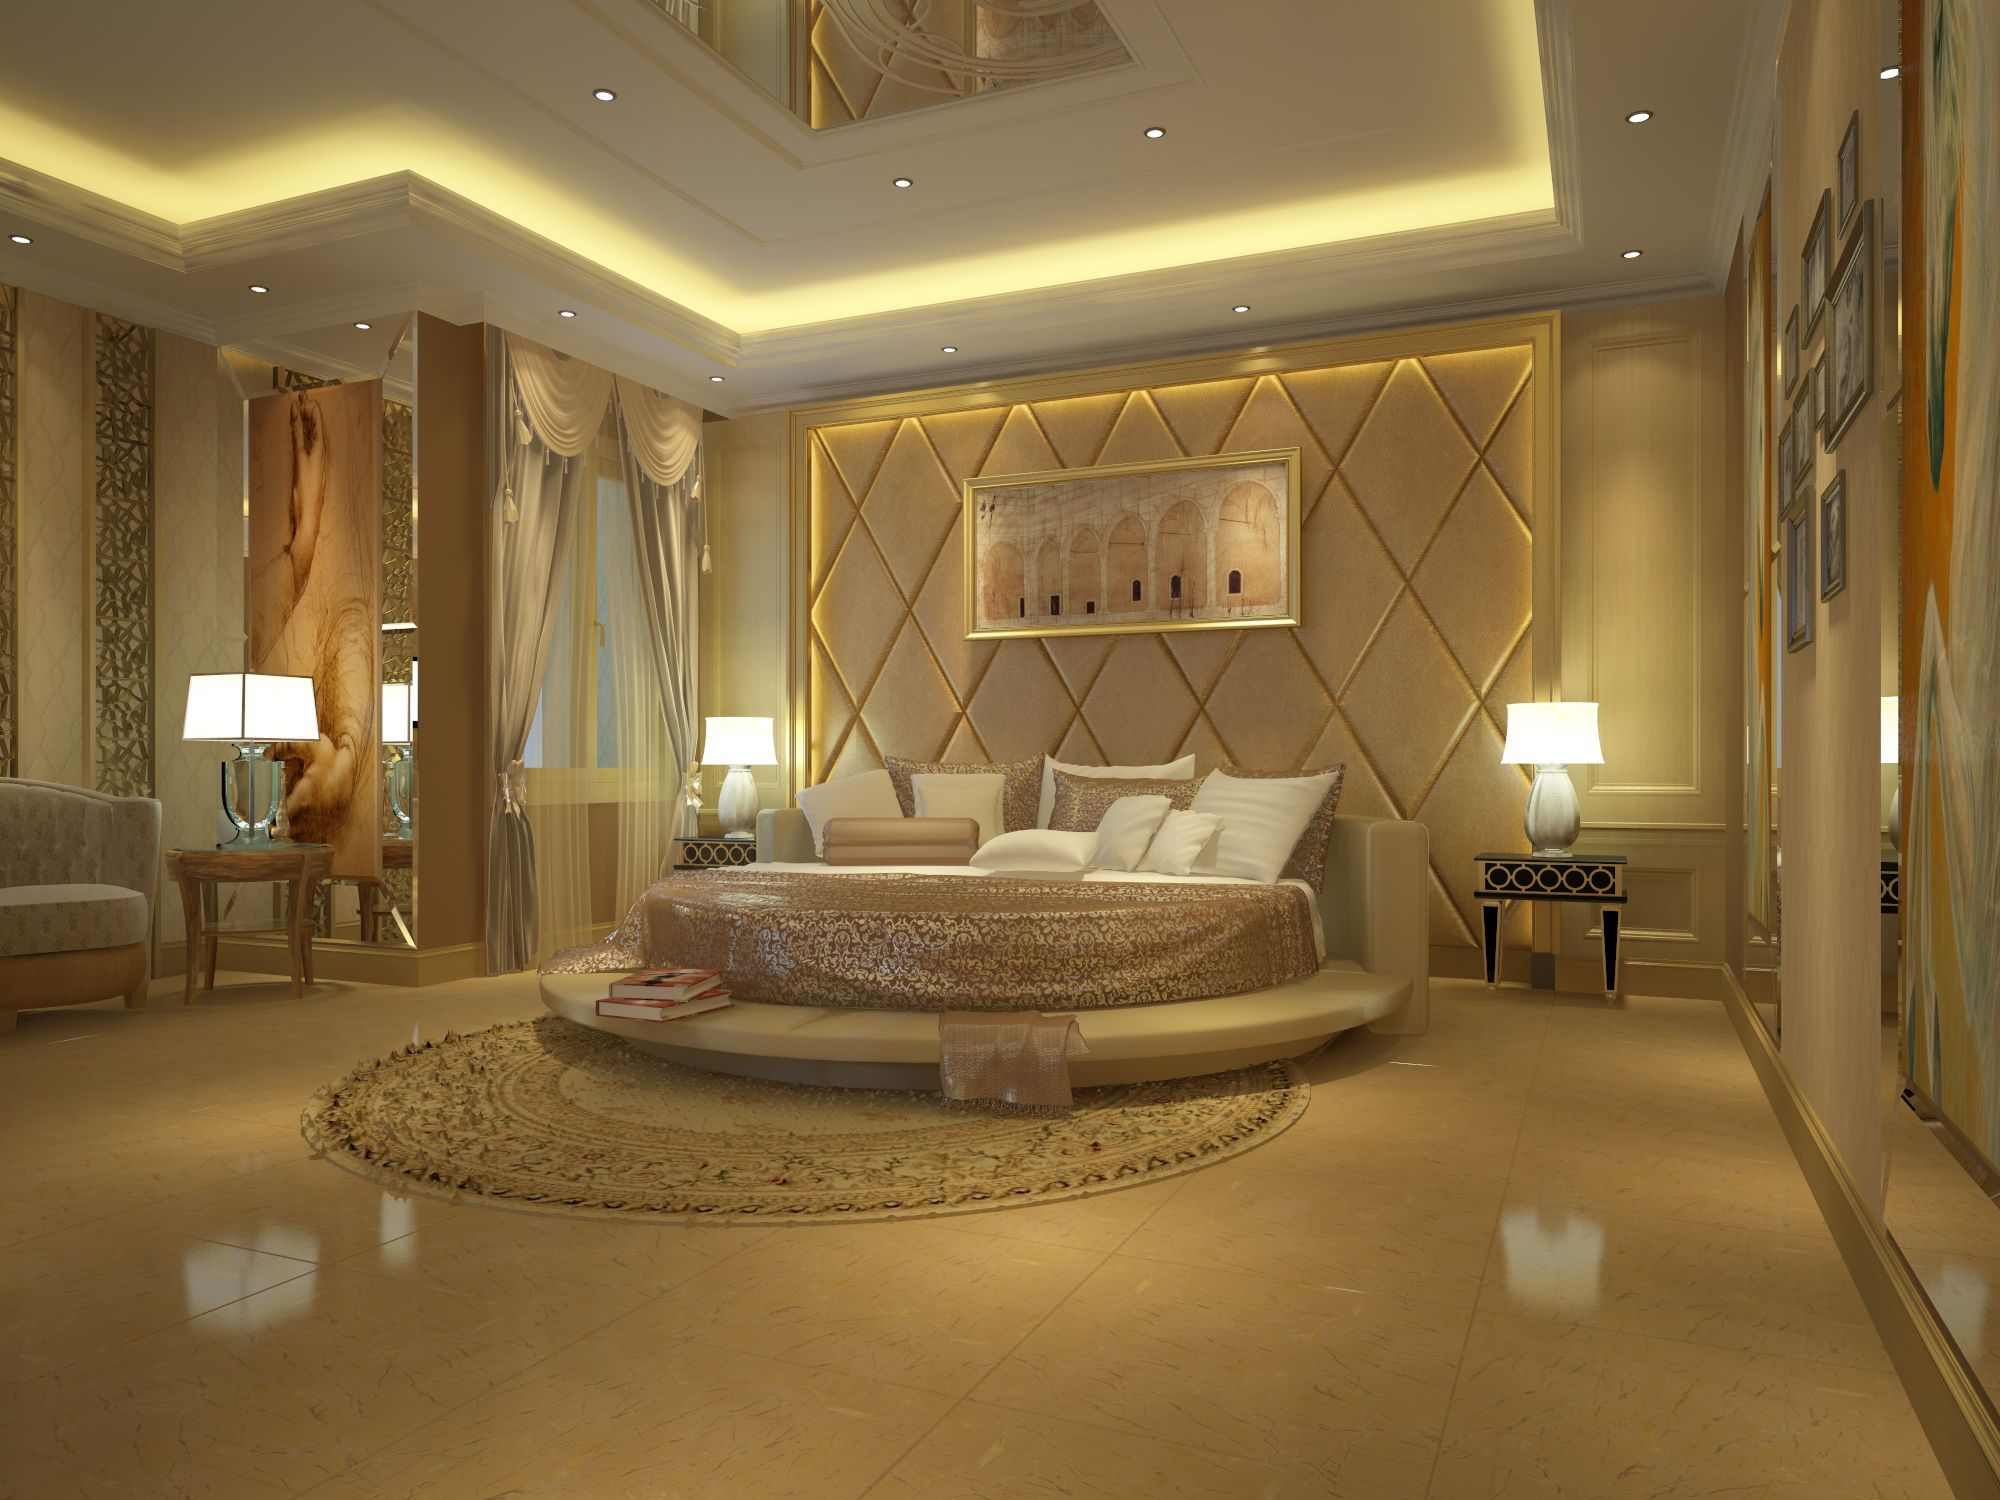 30 Romantic Master Bedroom Designs Luxury Master Bedroom Design